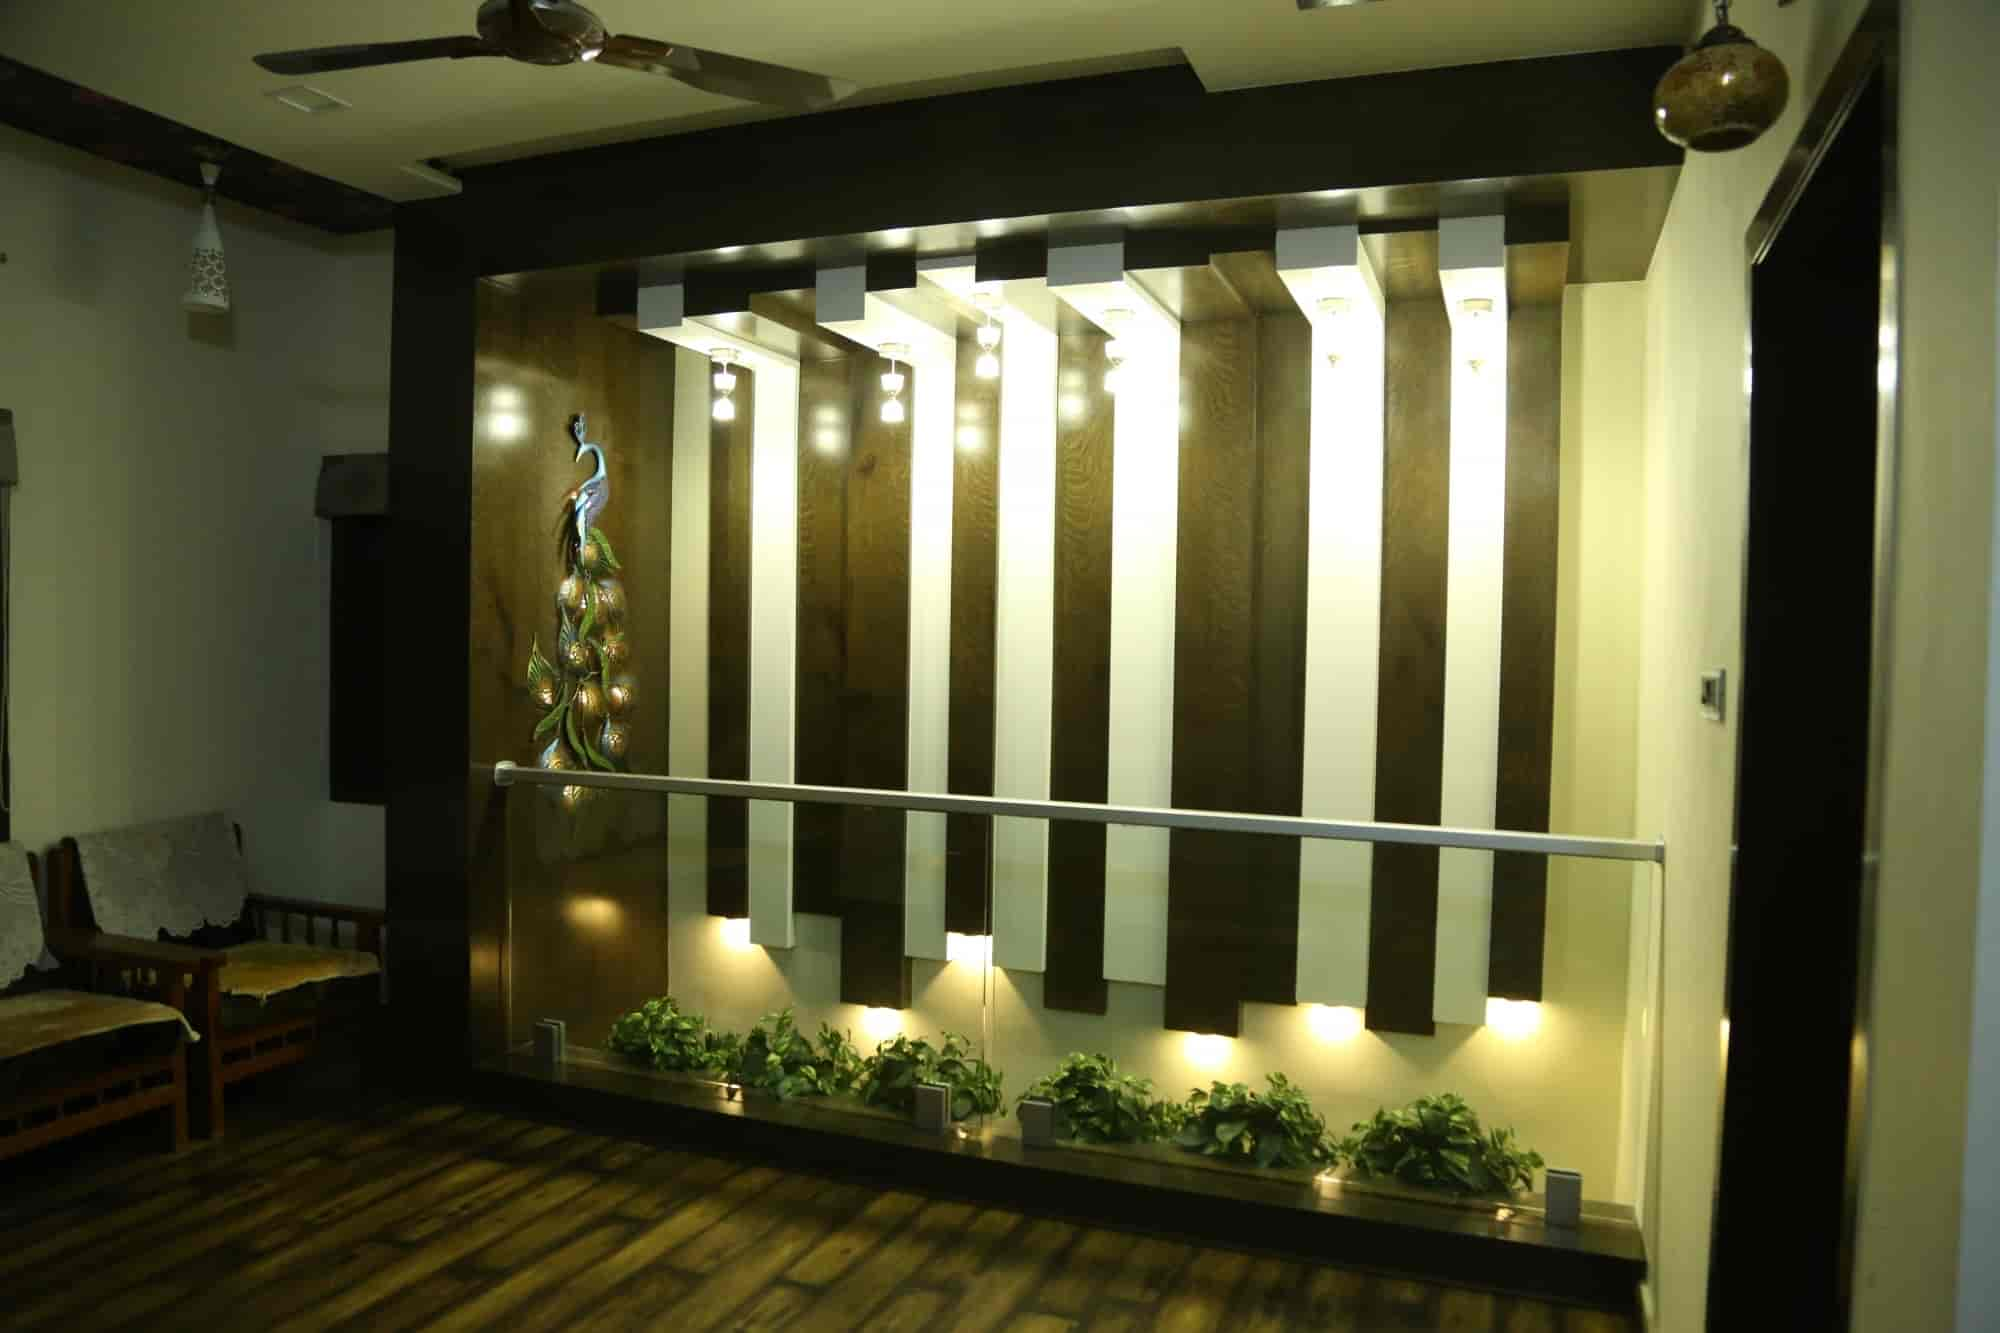 Architect Arpita Shah Satellite Interior Designers In Ahmedabad Ahmedabad Justdial